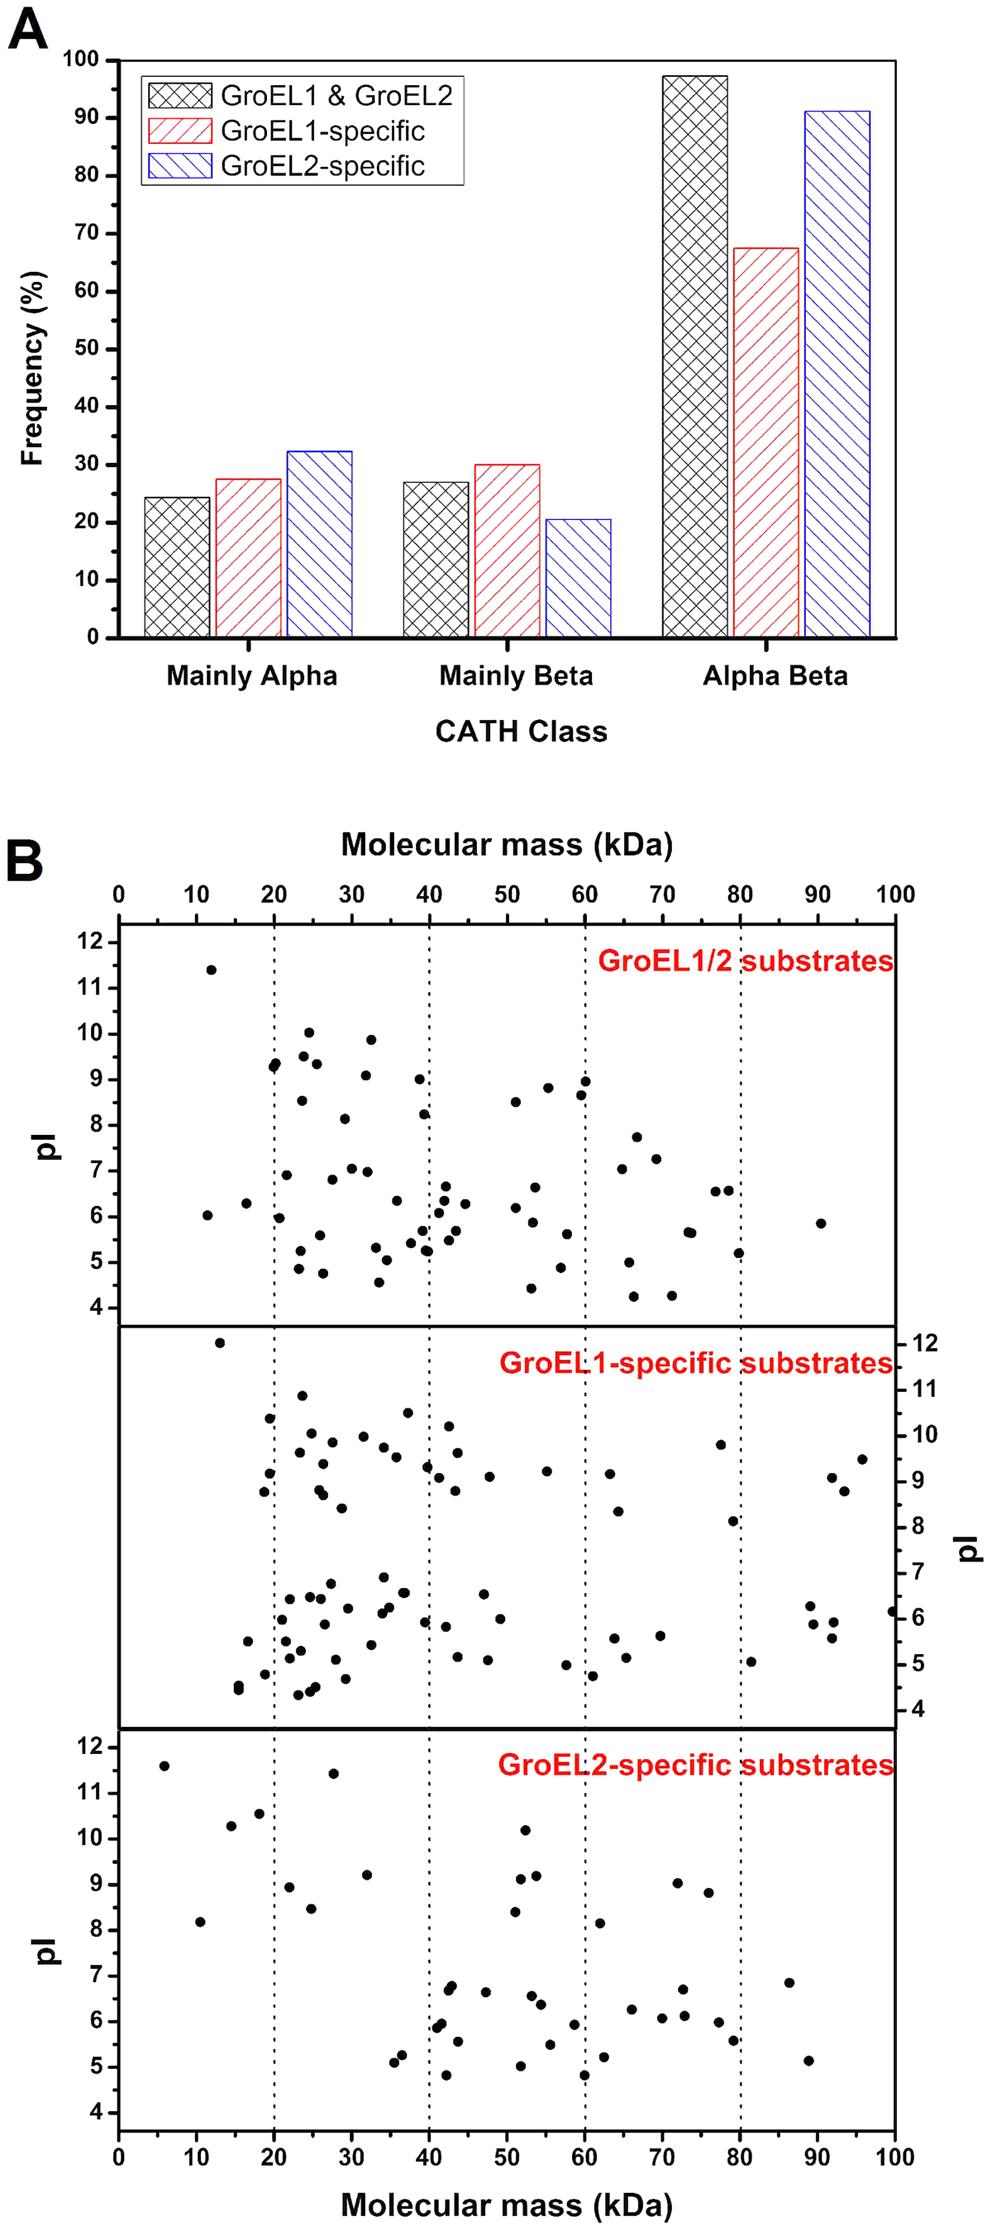 Substrate features of GroEL1 and GroEL2.